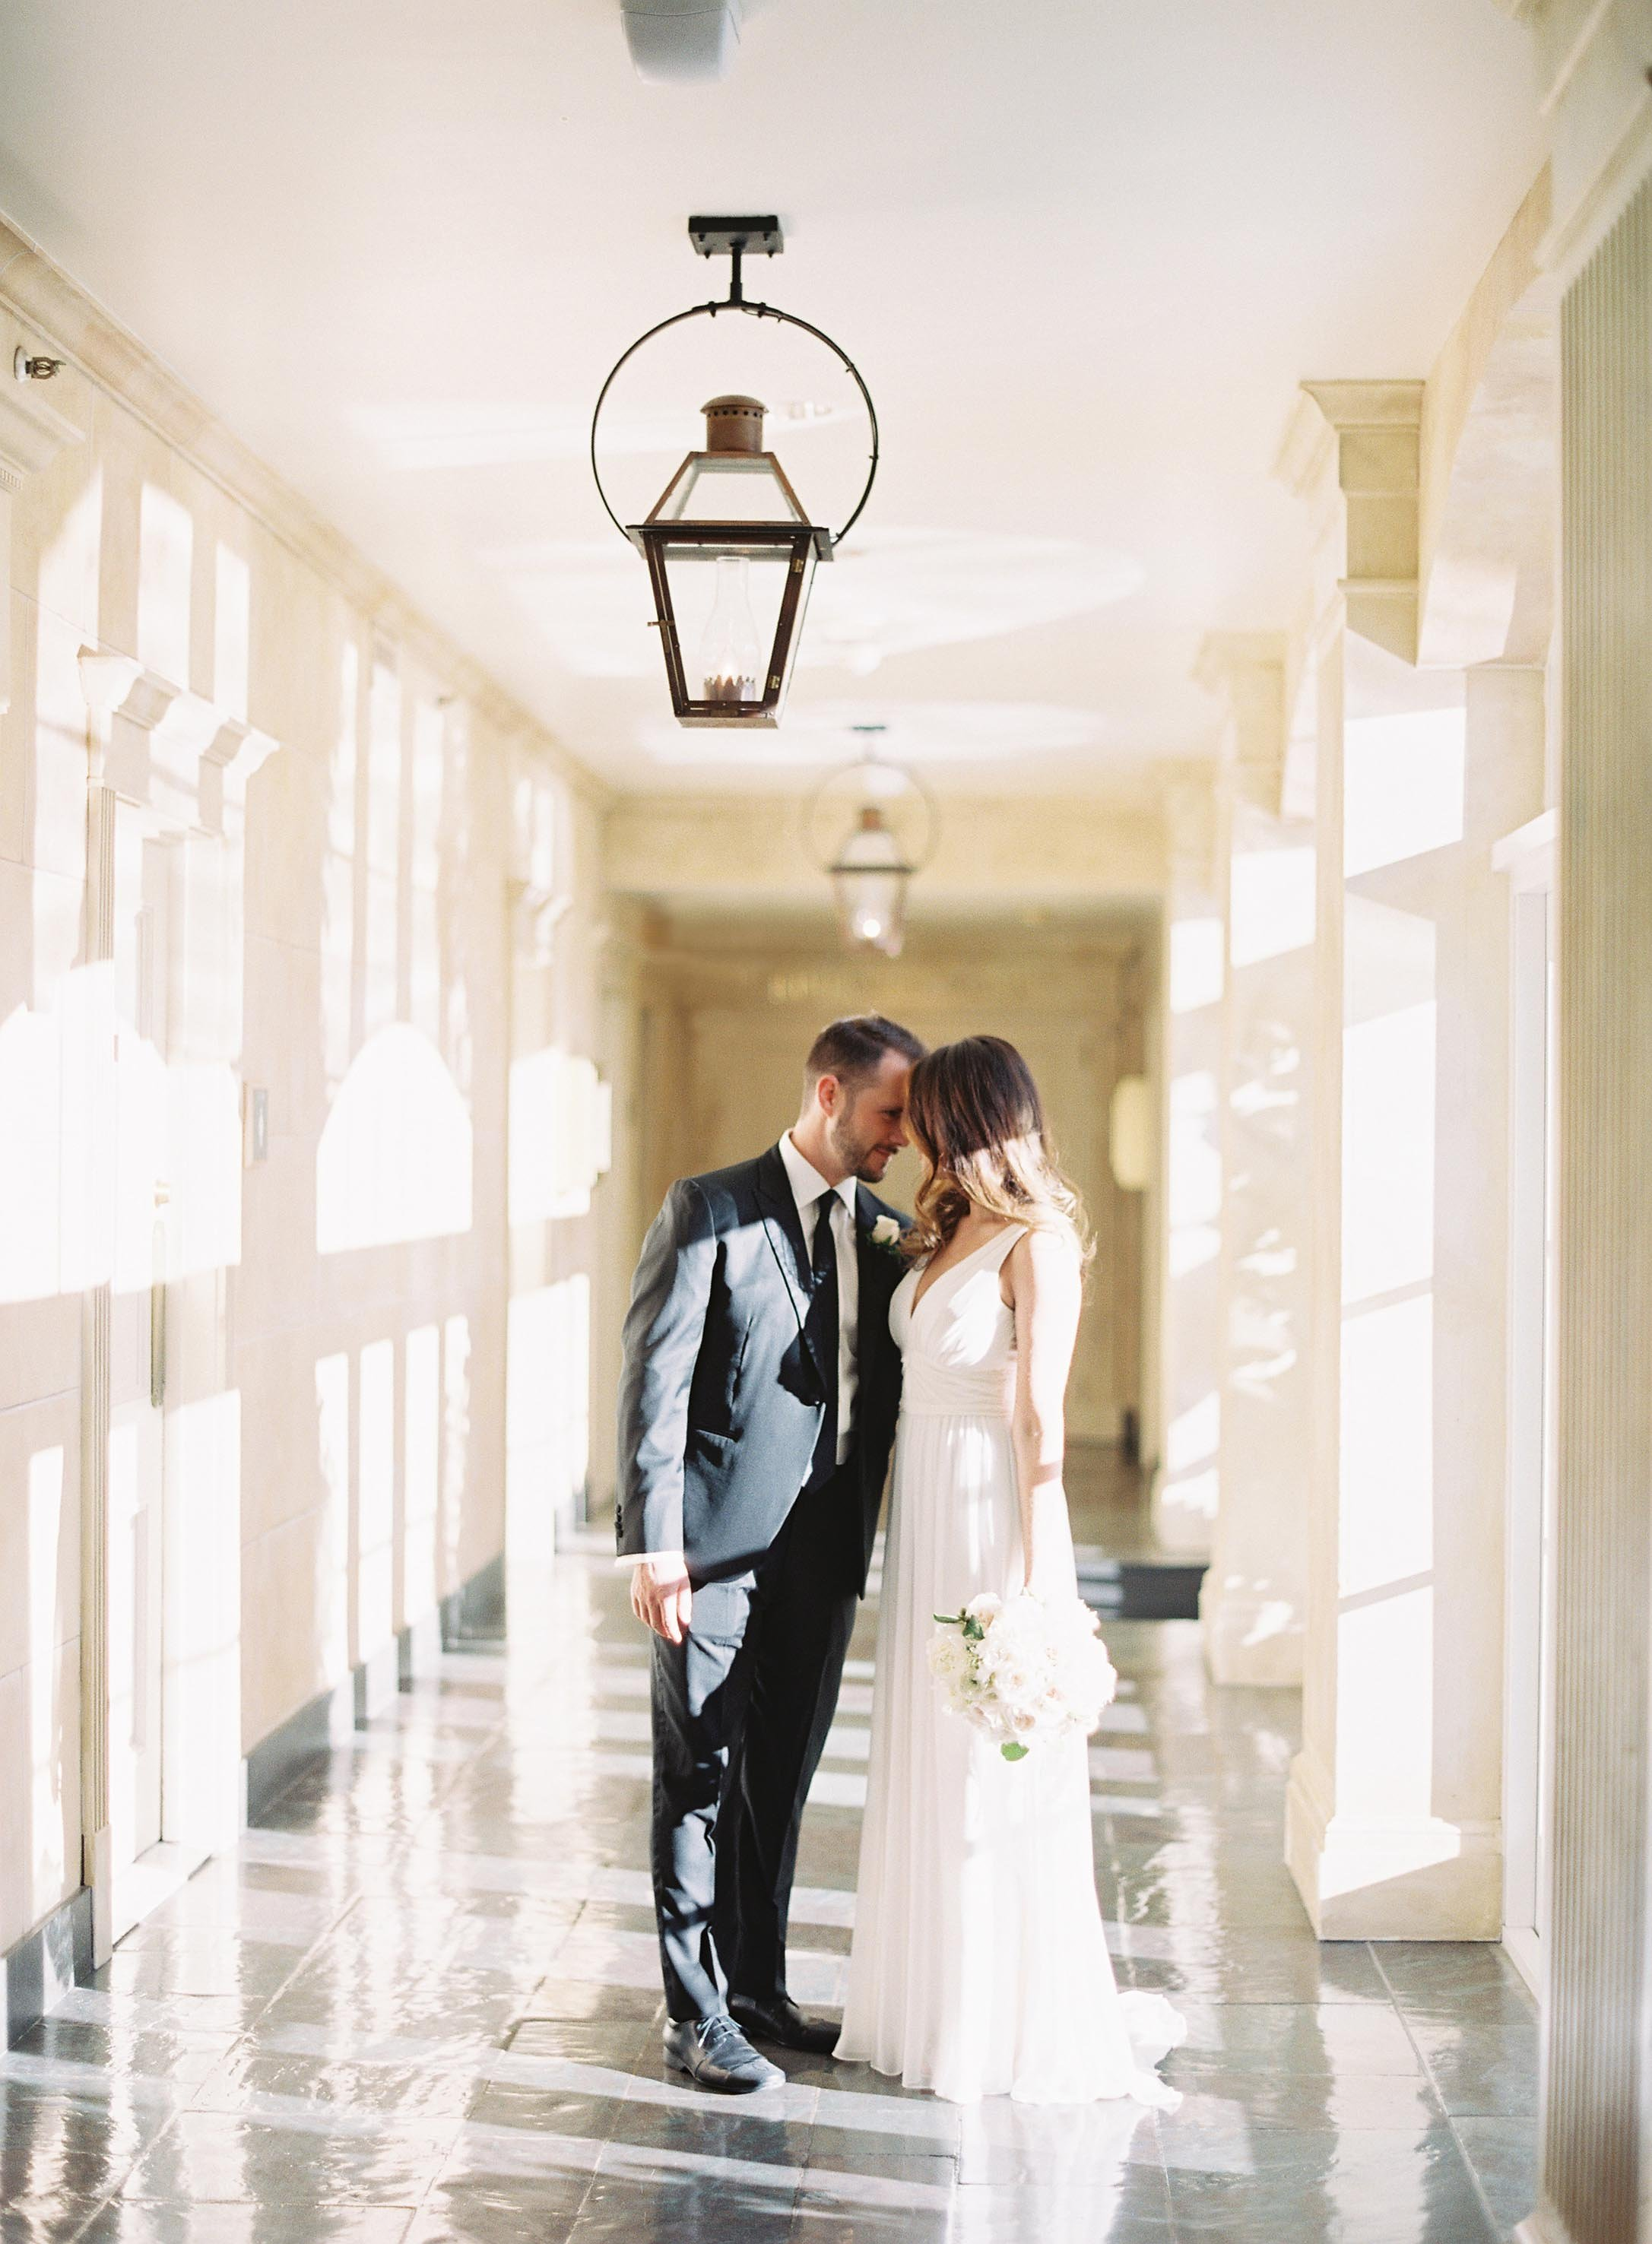 Wedding Planning Tips   Sapphire Events   Wedding Planner   Rylee Hitchner Photography   How to Use Pinterest